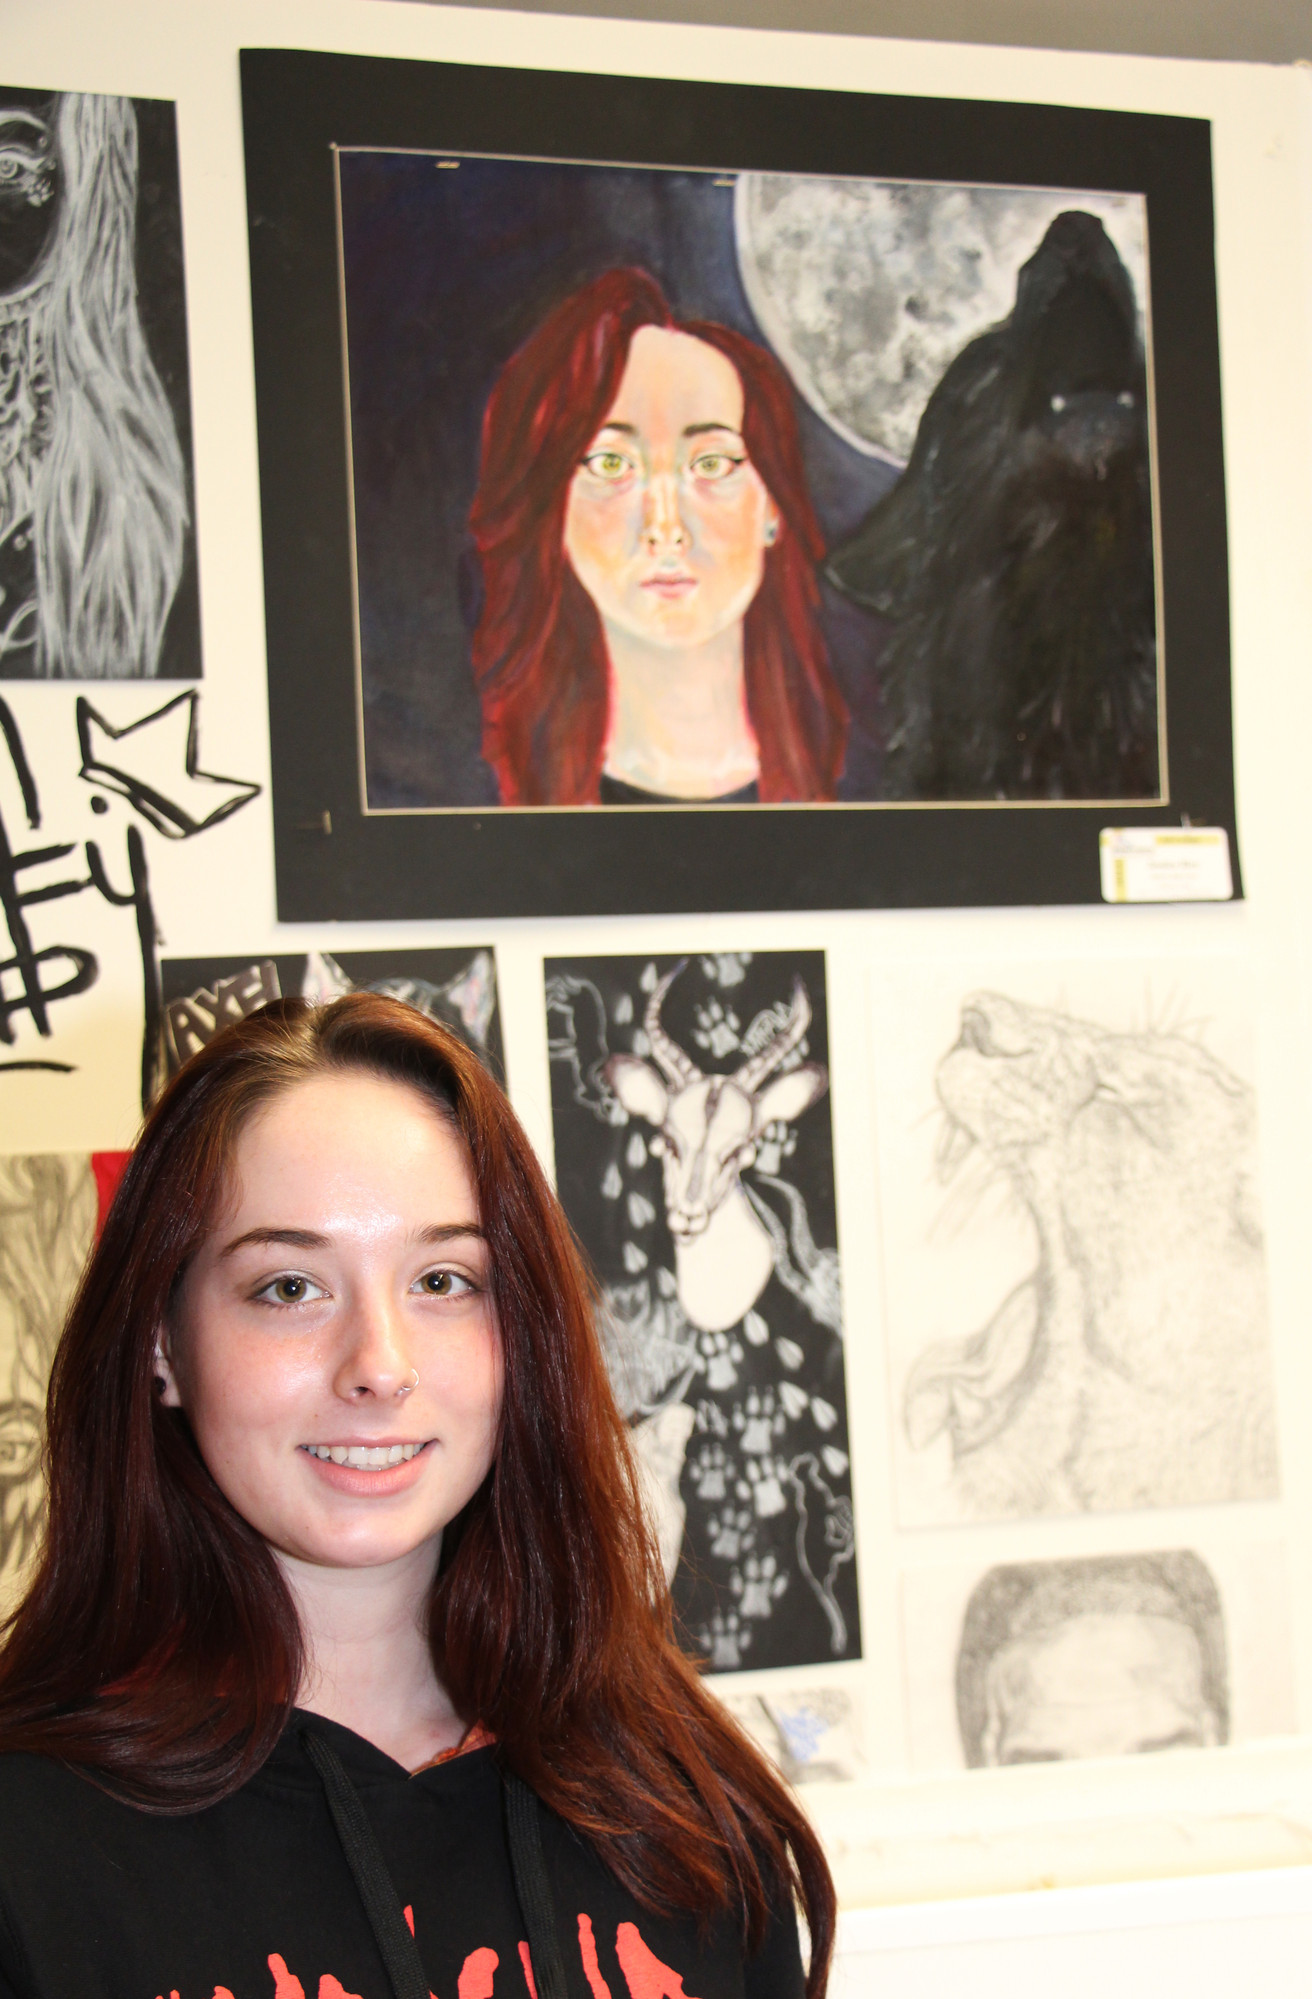 Jessica Rice, a senior at BHS, used many different tools to create her artwork.